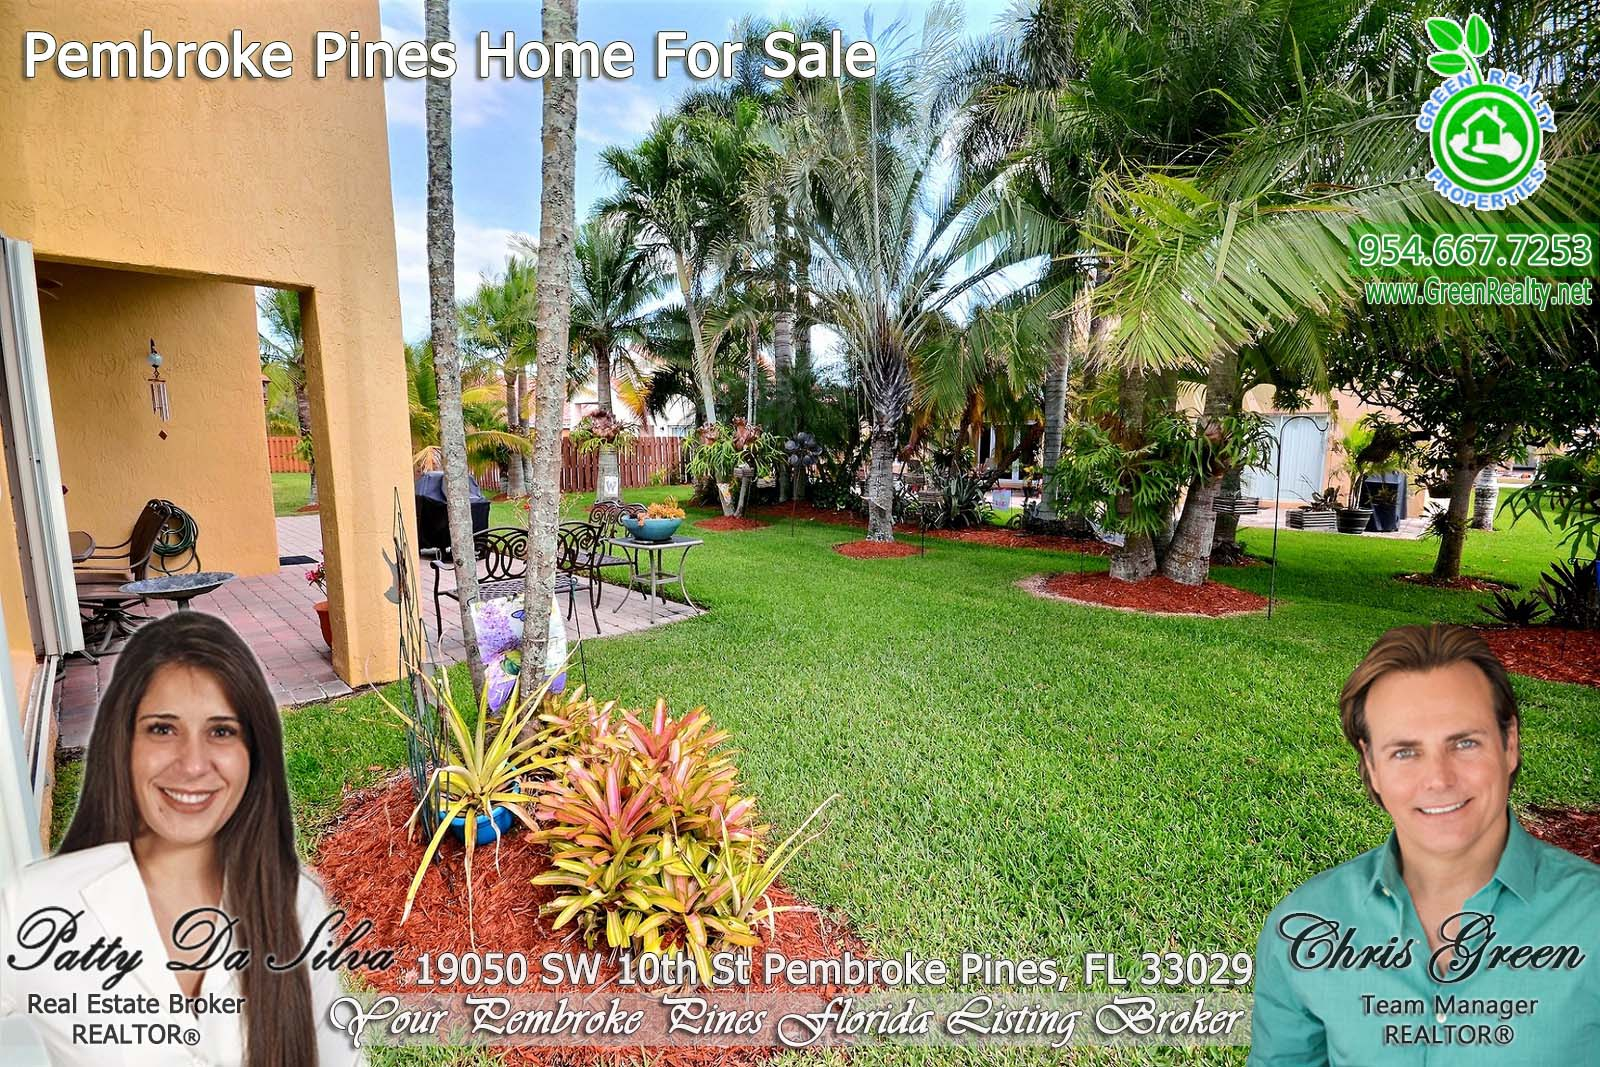 31 Encantada Homes For Sale on Pembroke Pines (3)